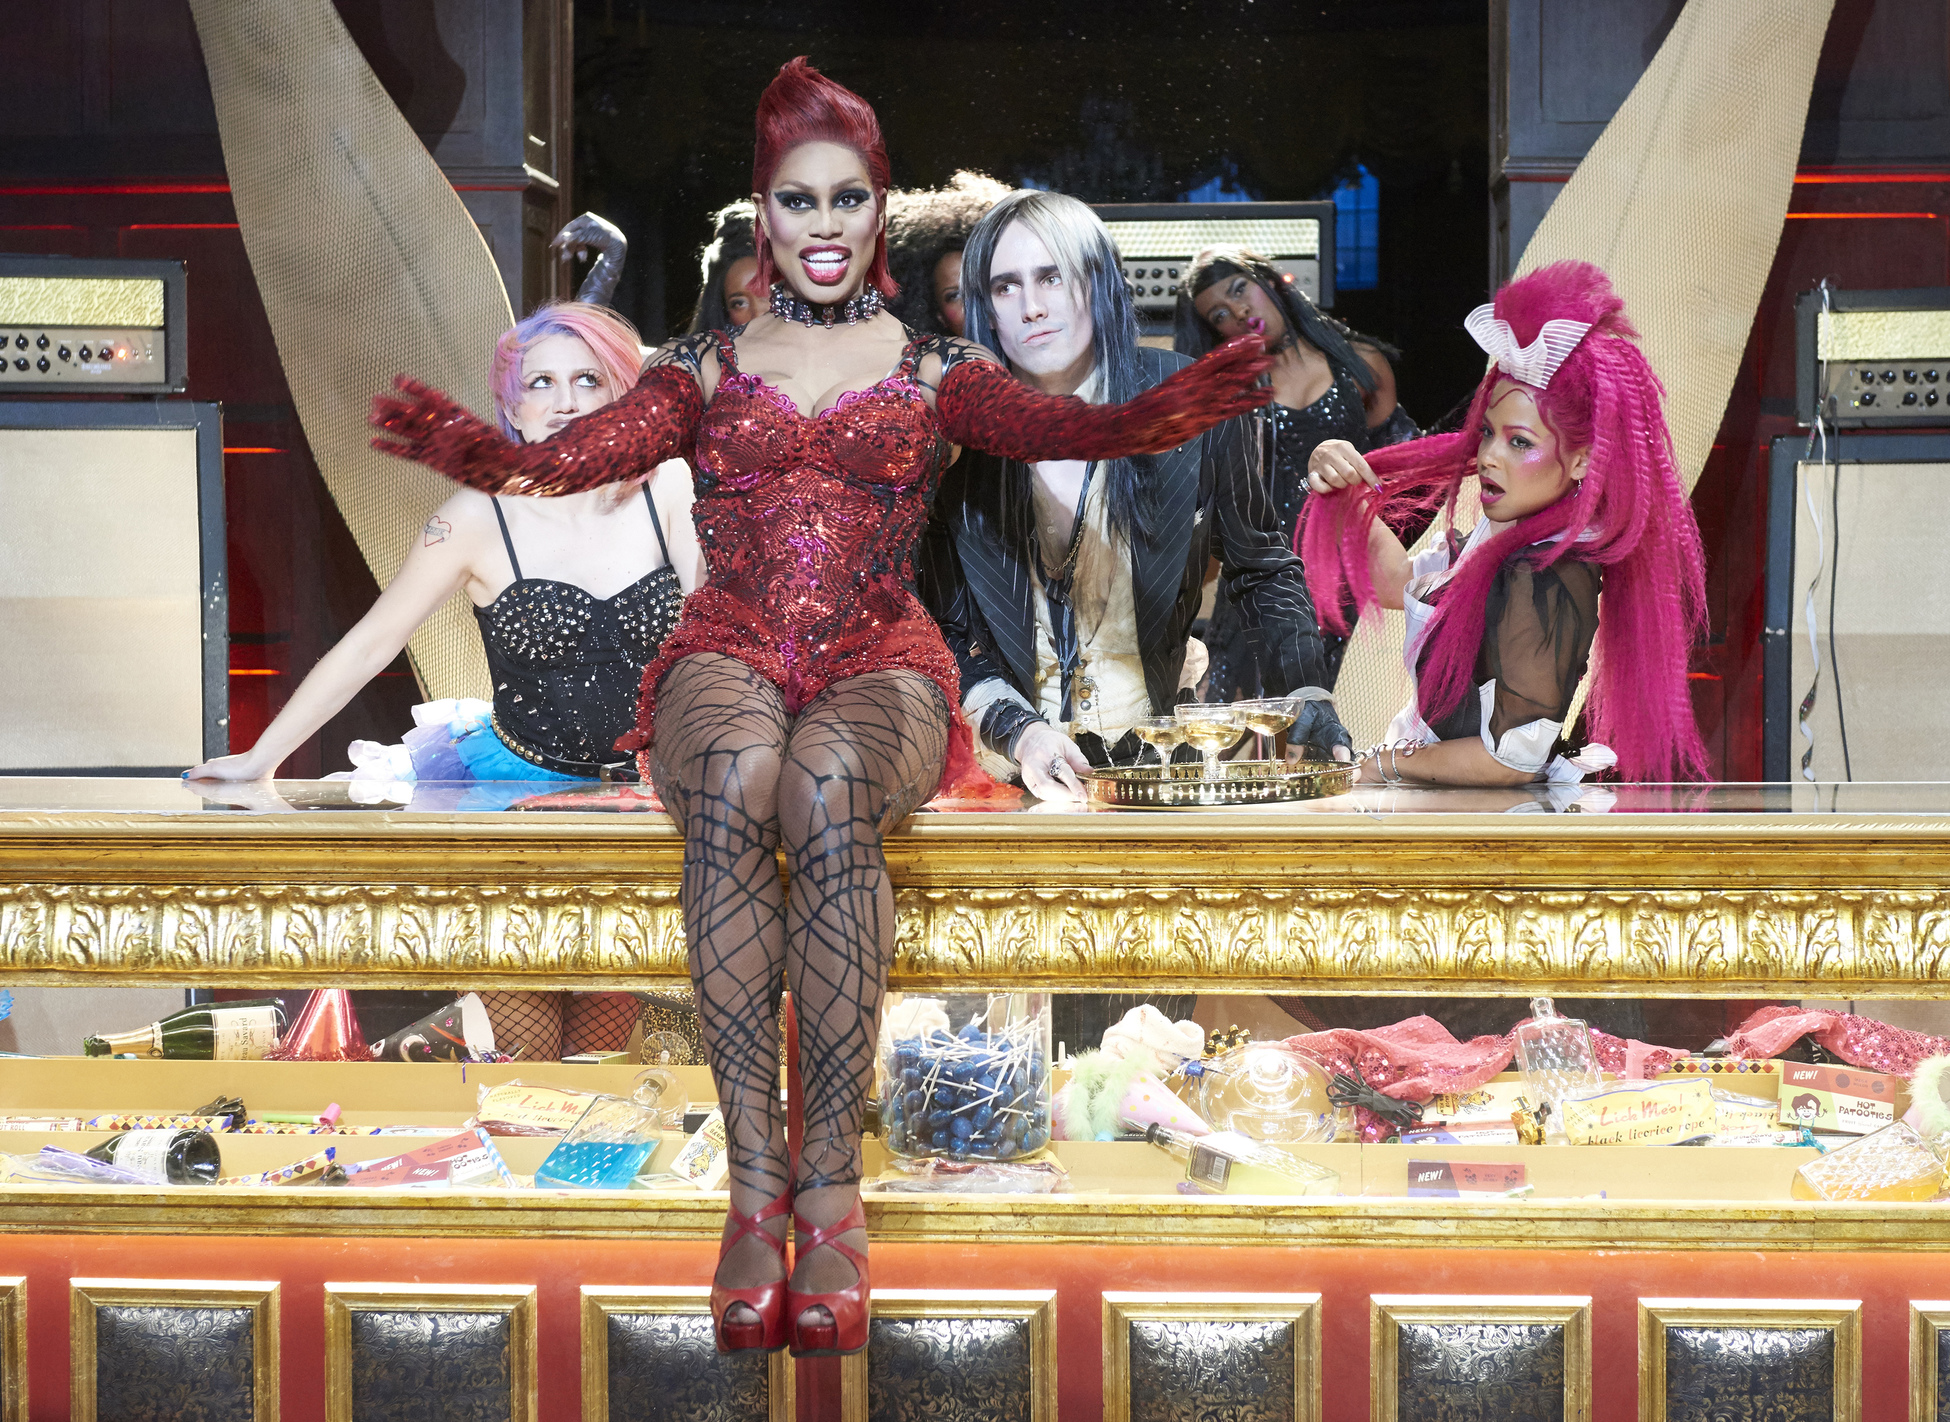 THE ROCKY HORROR PICTURE SHOW Fox